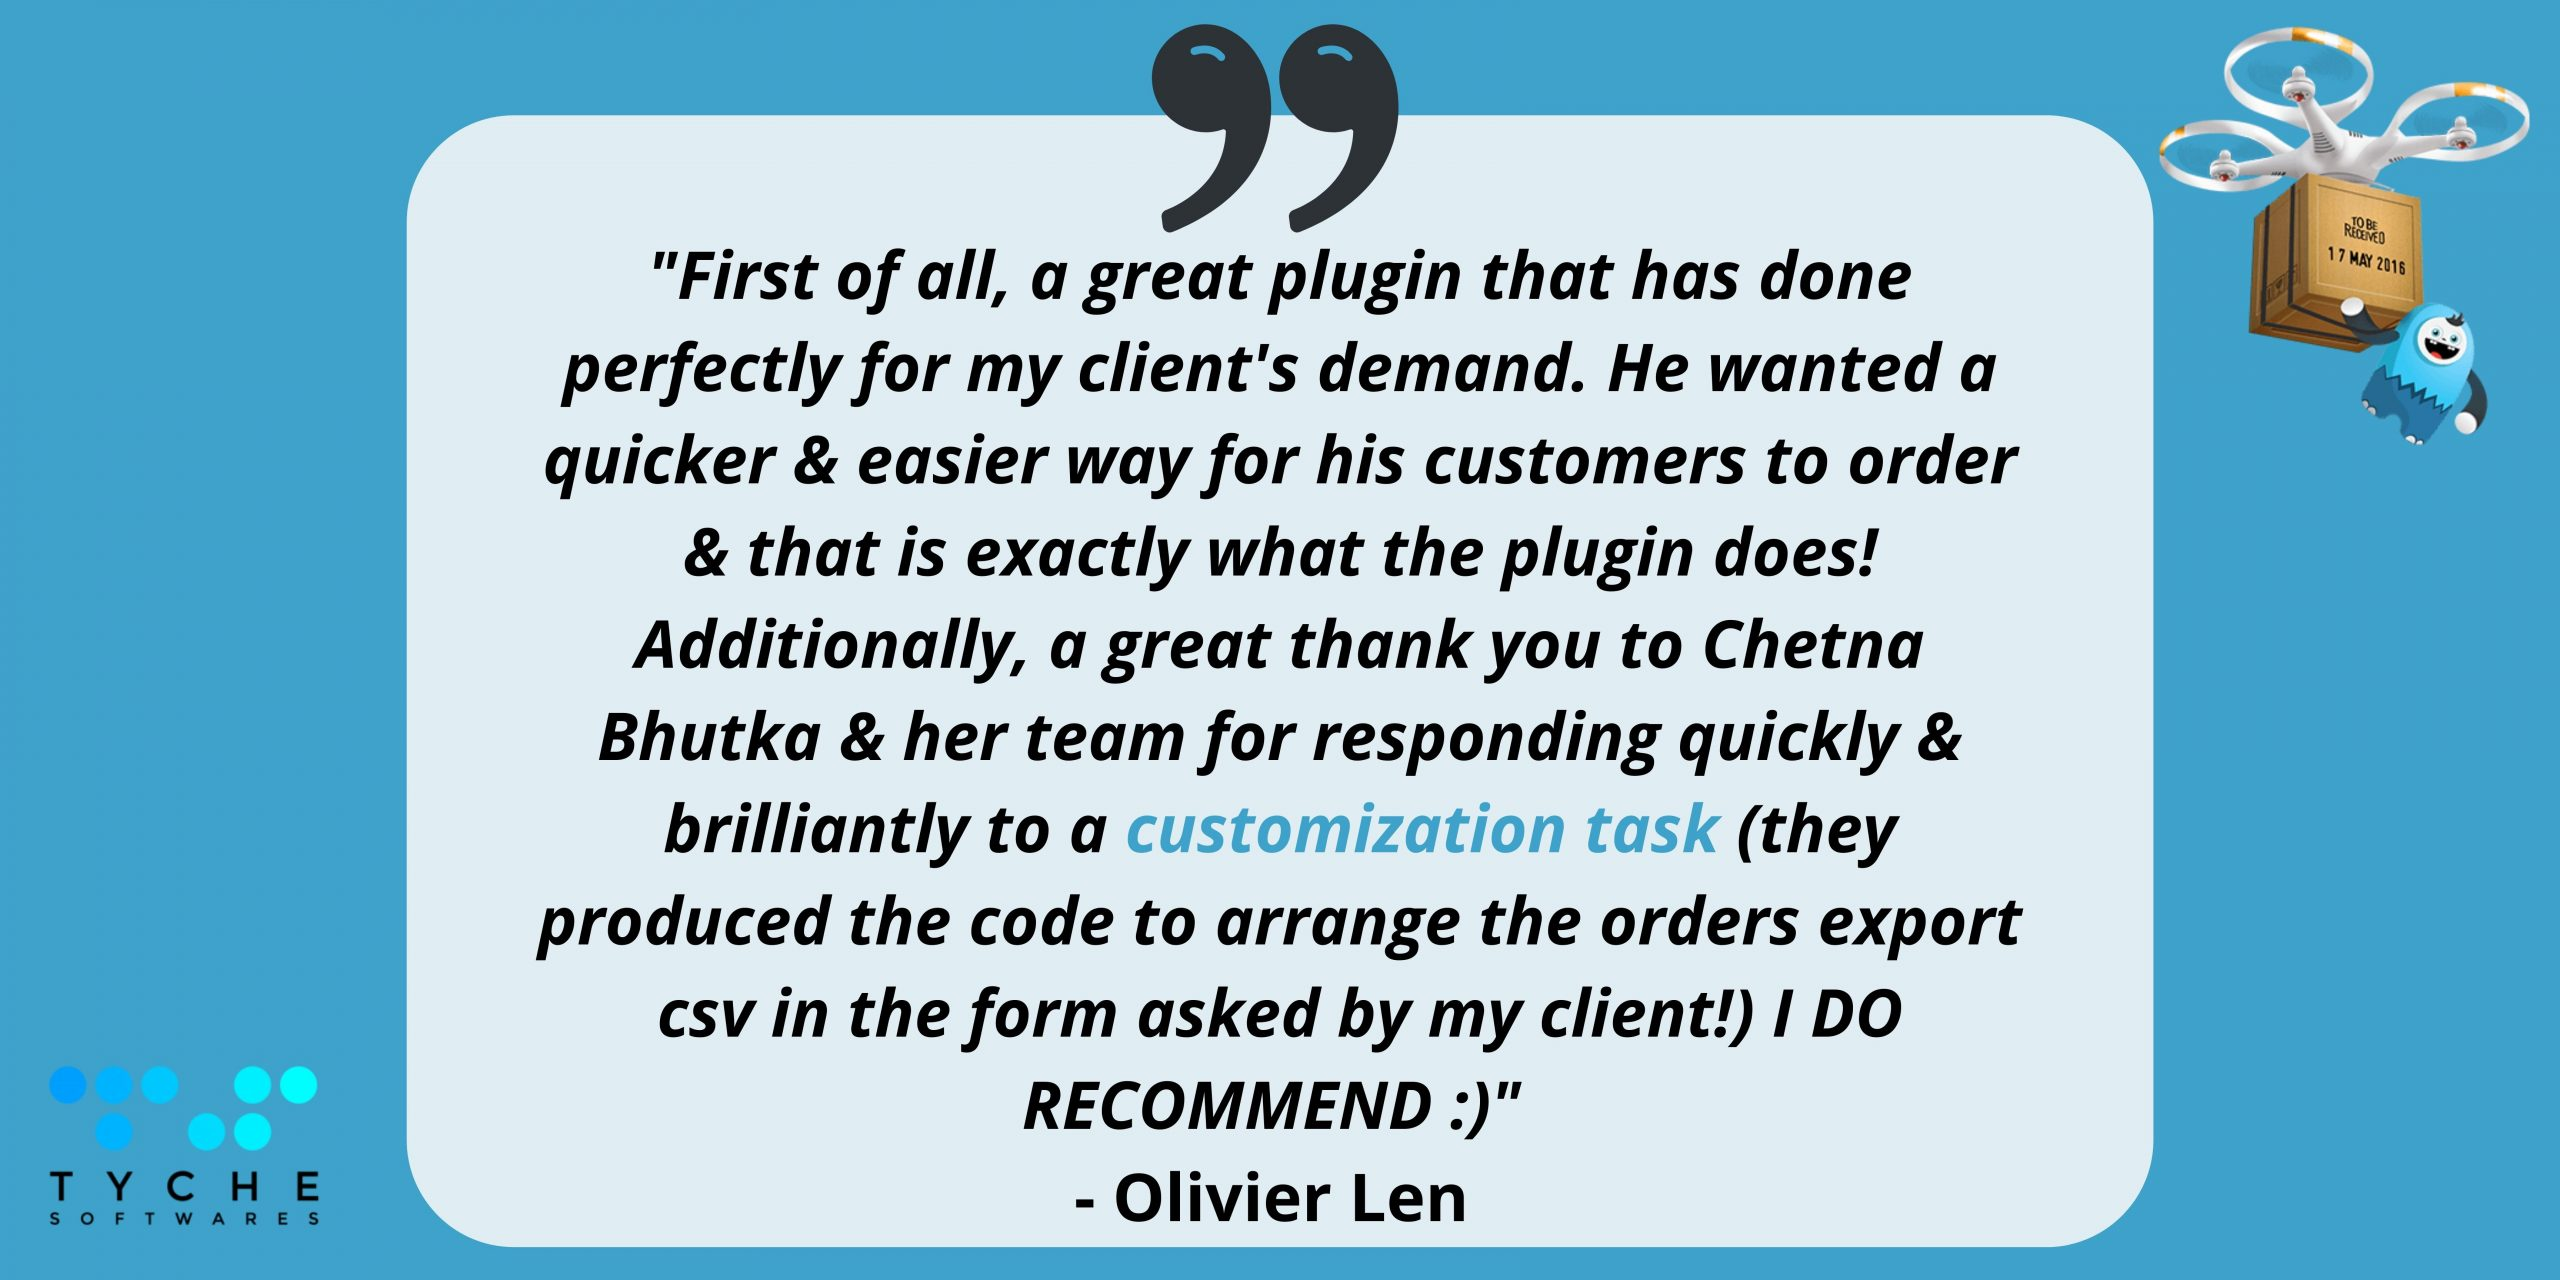 Customers reviews/feedback on One year with Order Delivery Date Pro will transform your business | Tychesoftwares.